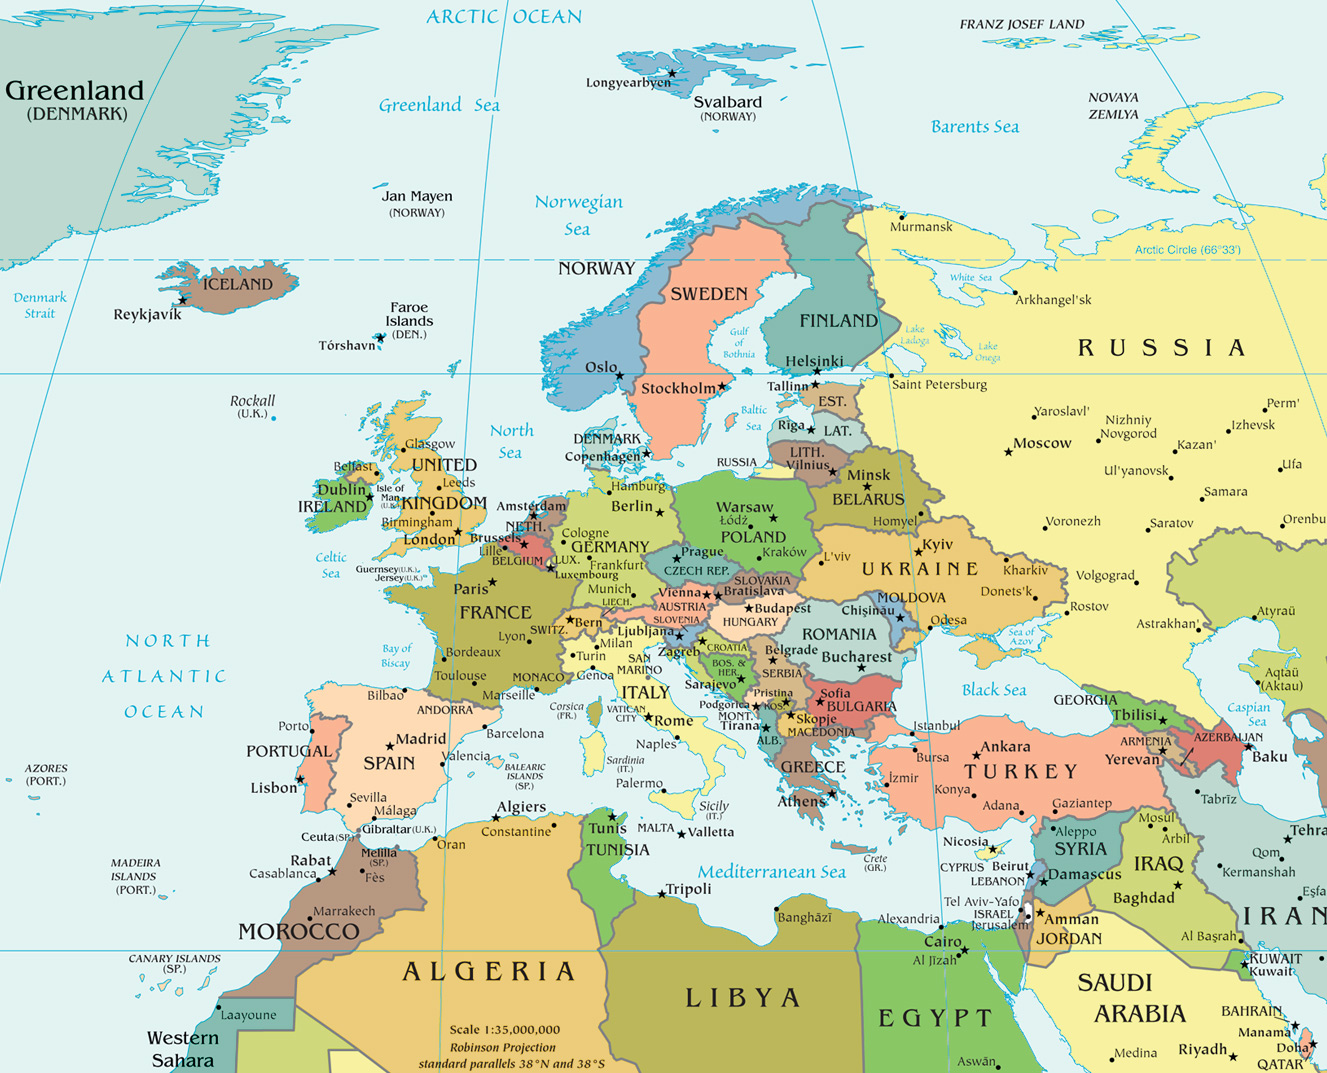 Geopolitics Of Europe And The Iron Law Of Evolutionary